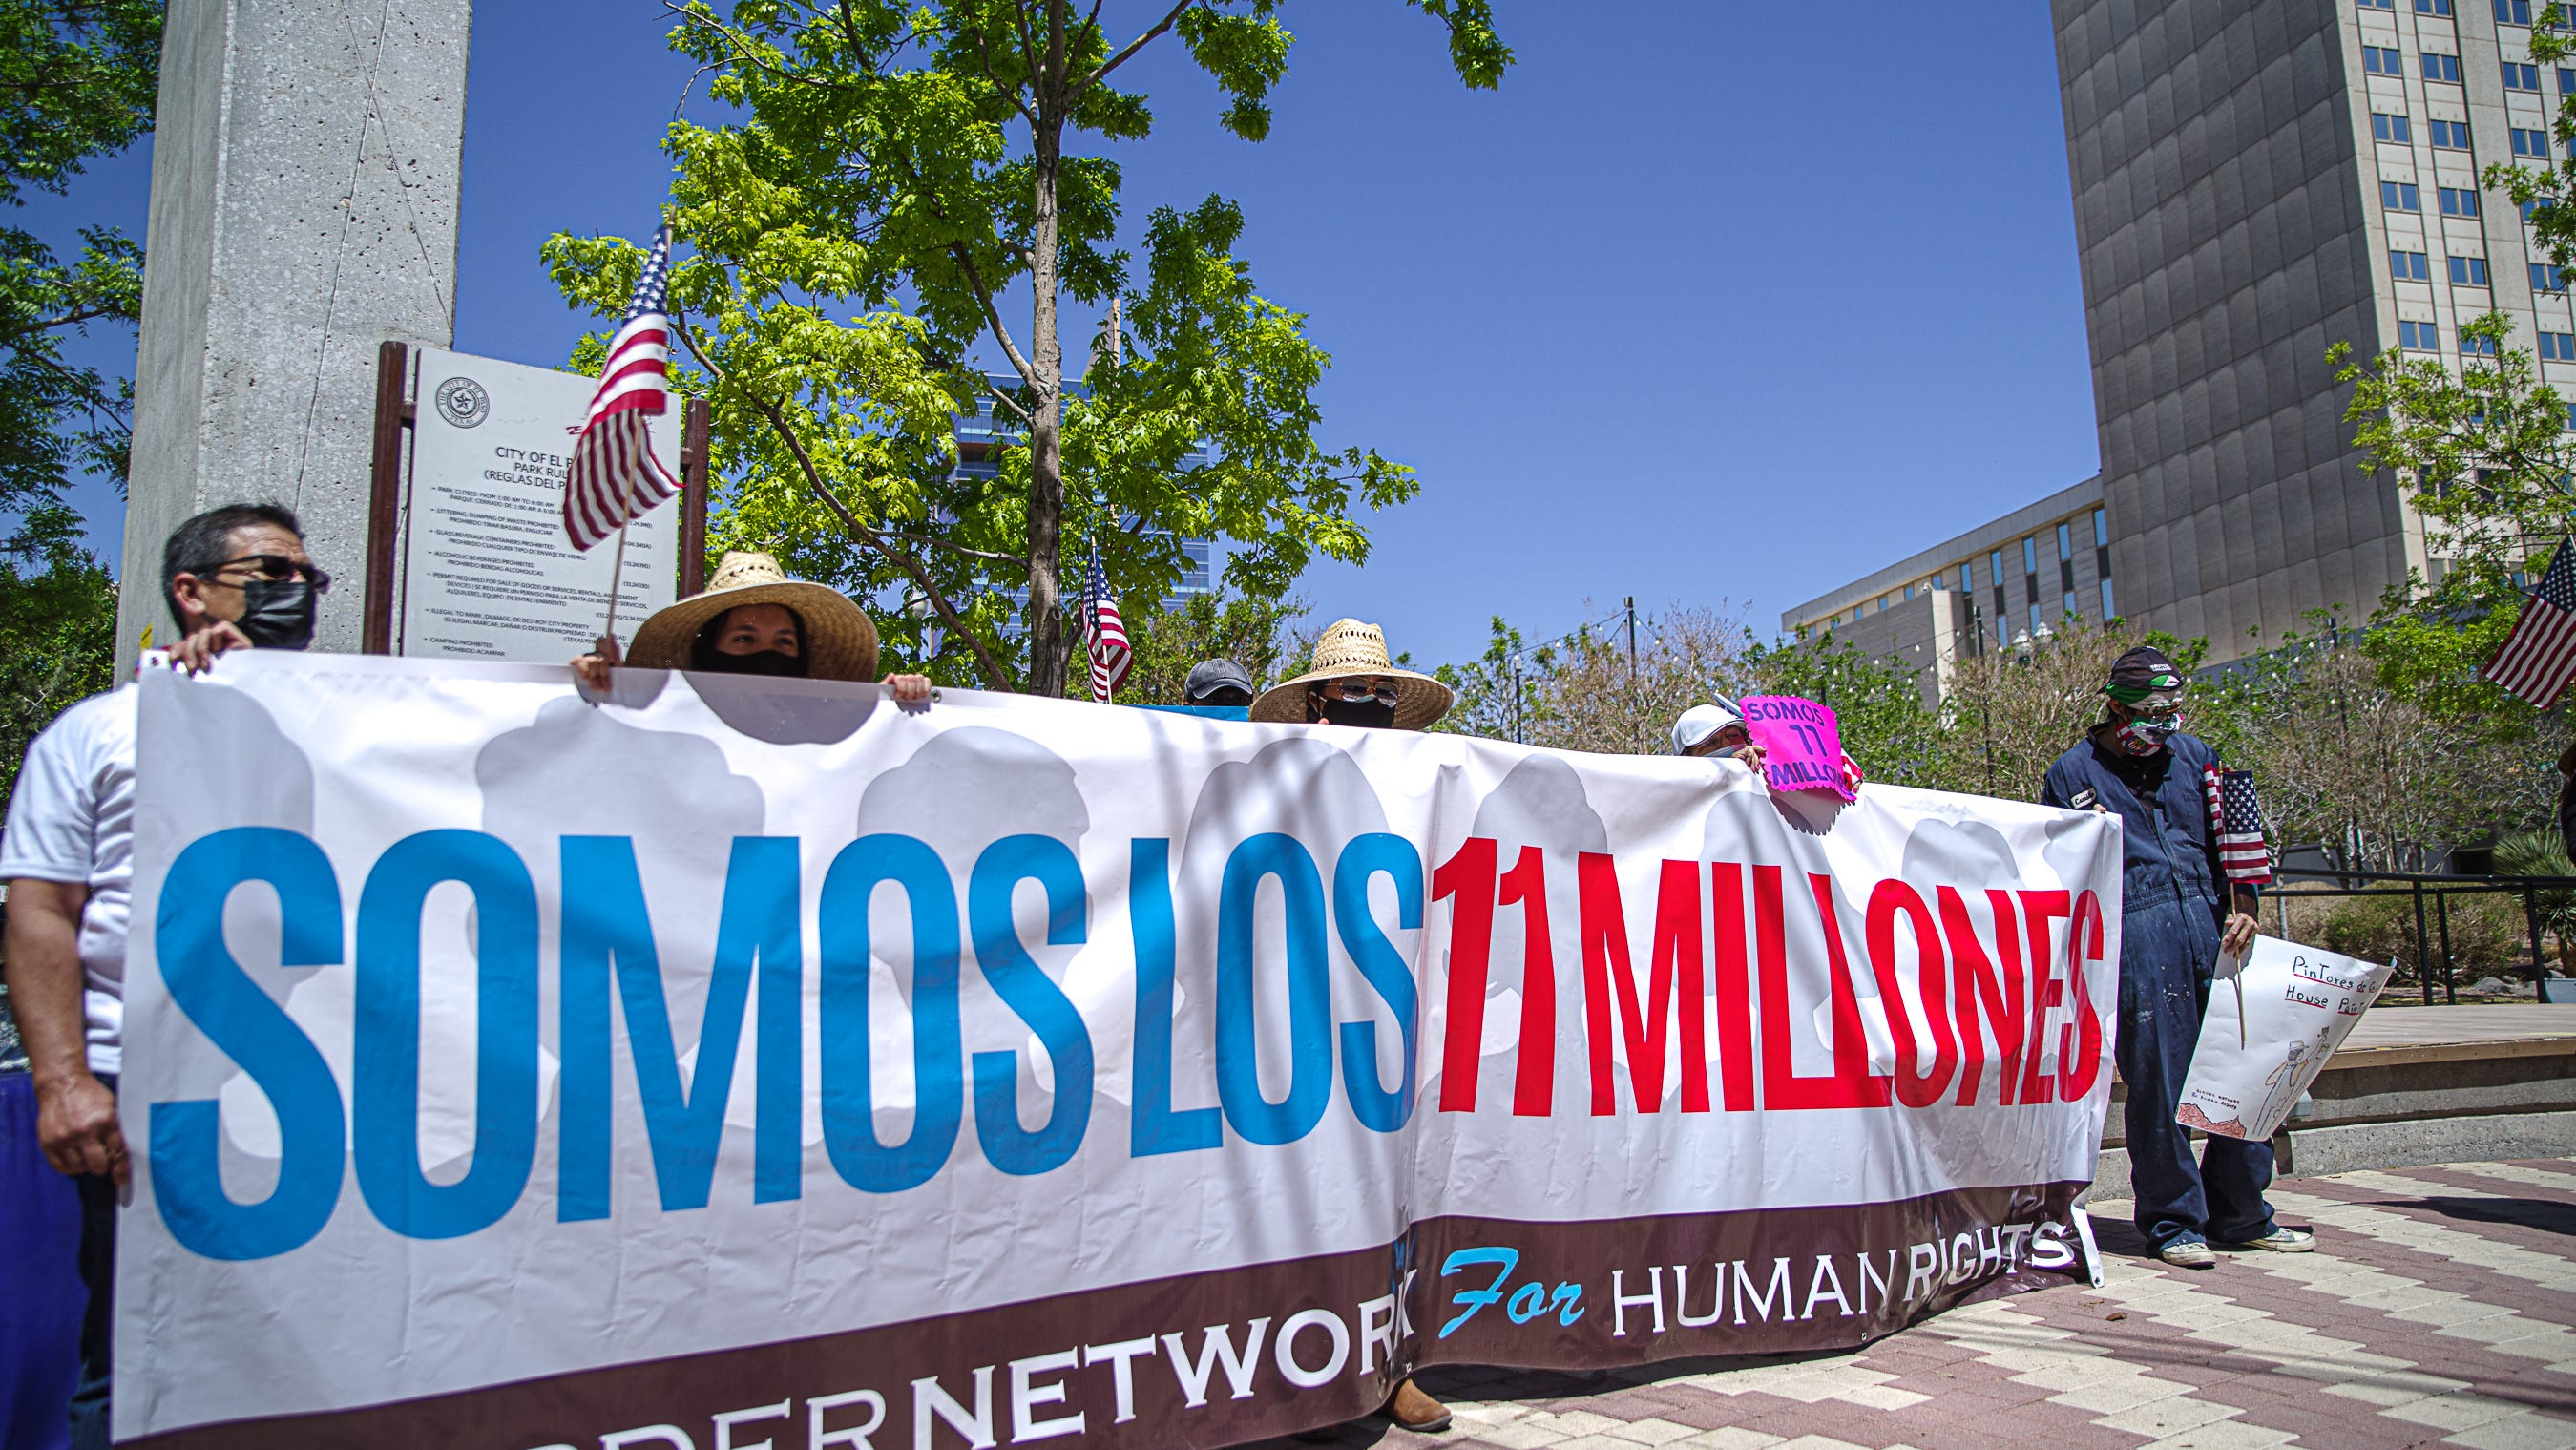 Border Network for Human Rights marches for immigration reform